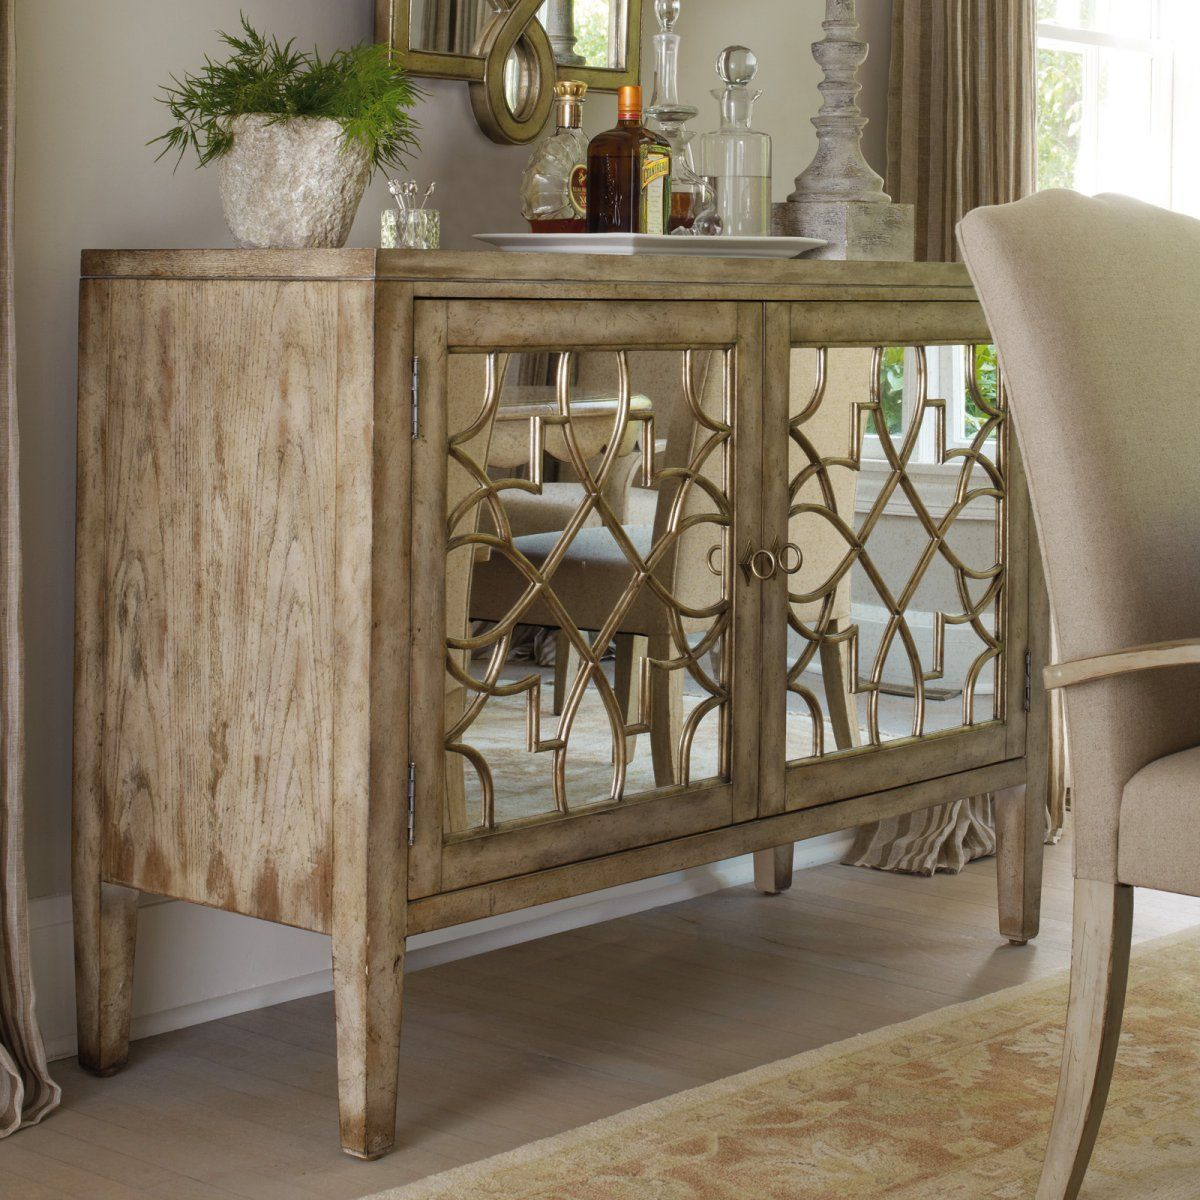 Sanctuary two door mirrored console dining accent furniture at